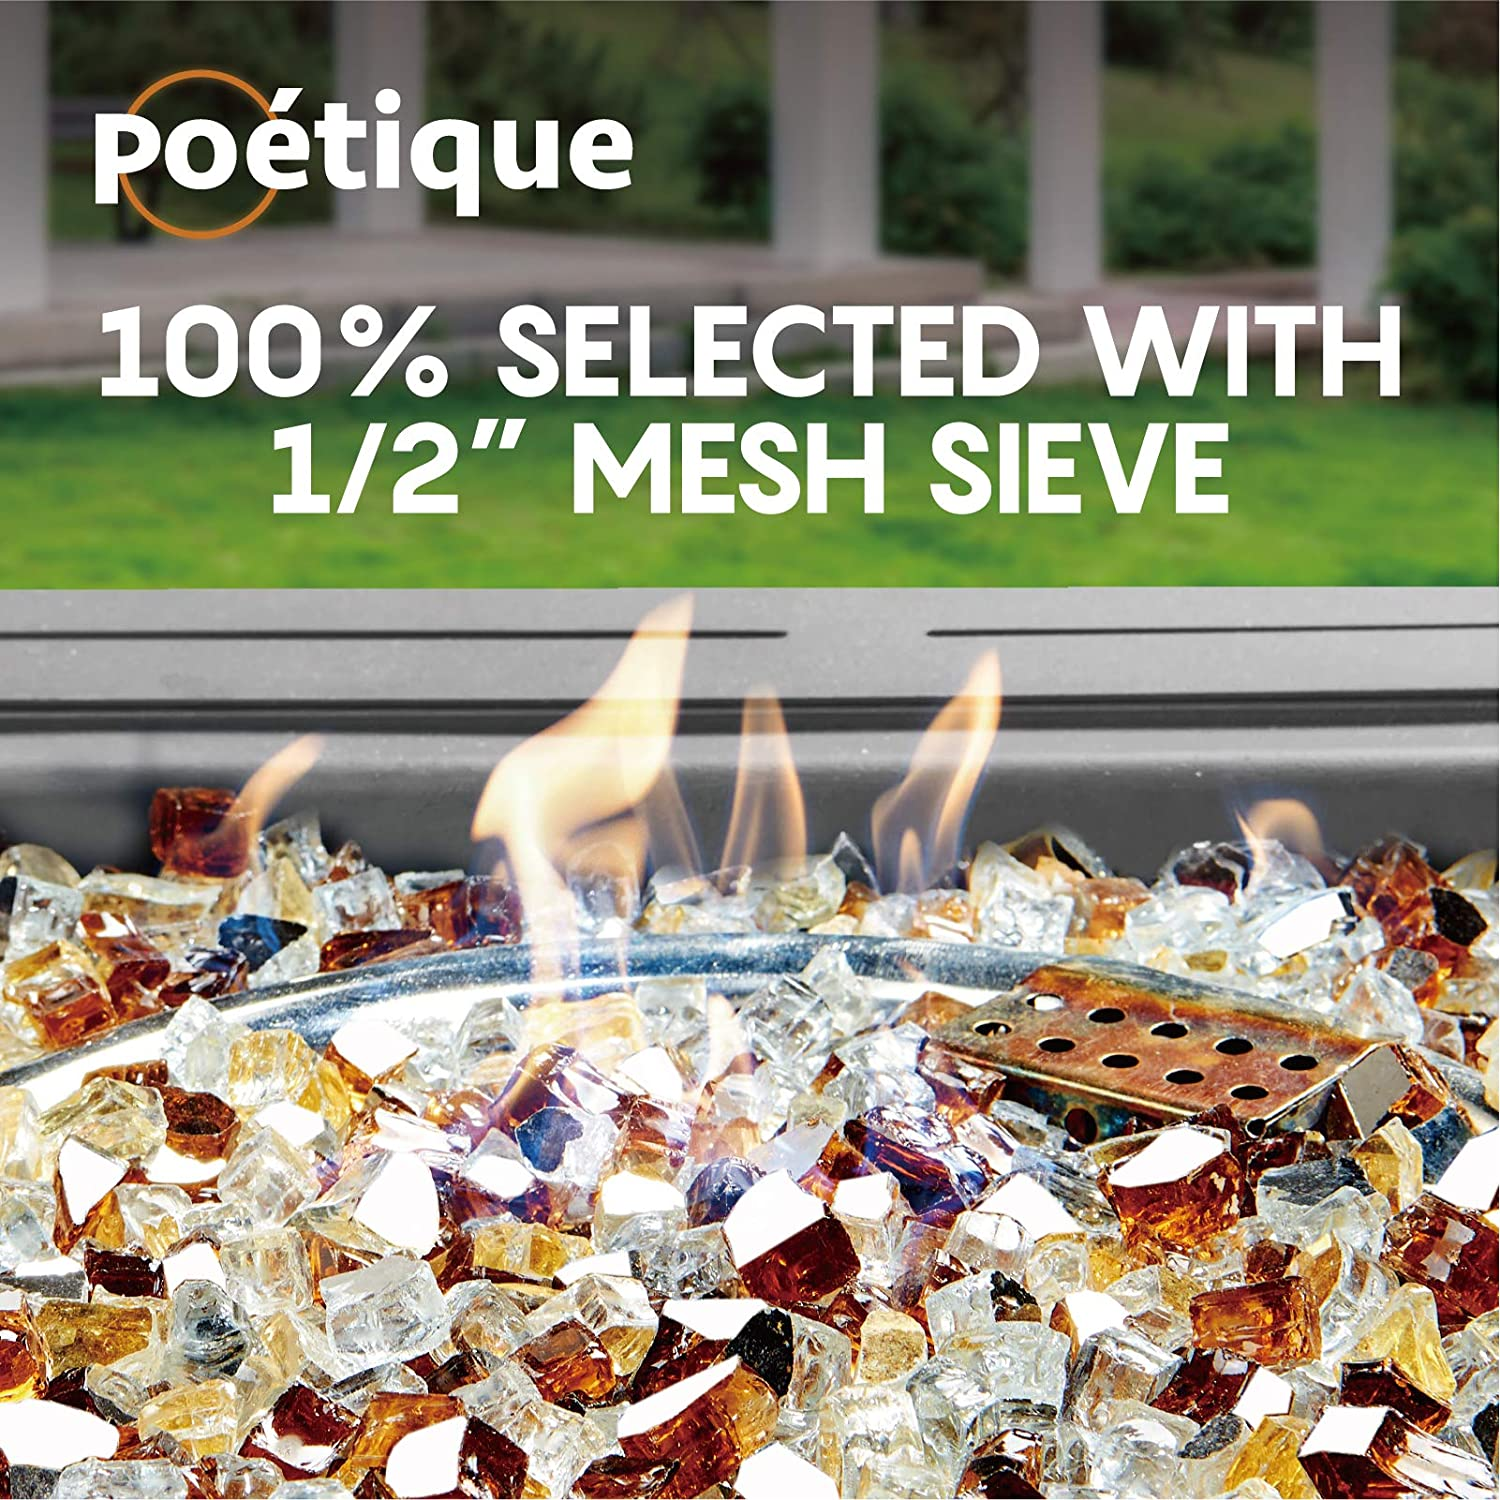 Reflective Tempered Fireglass Rocks 1//2 Inch for Gas or Propane Fireplace Outdoors Platinum Copper Bravex Fire Glass Blended for Fire Pit 10 Pound Ancient Blue